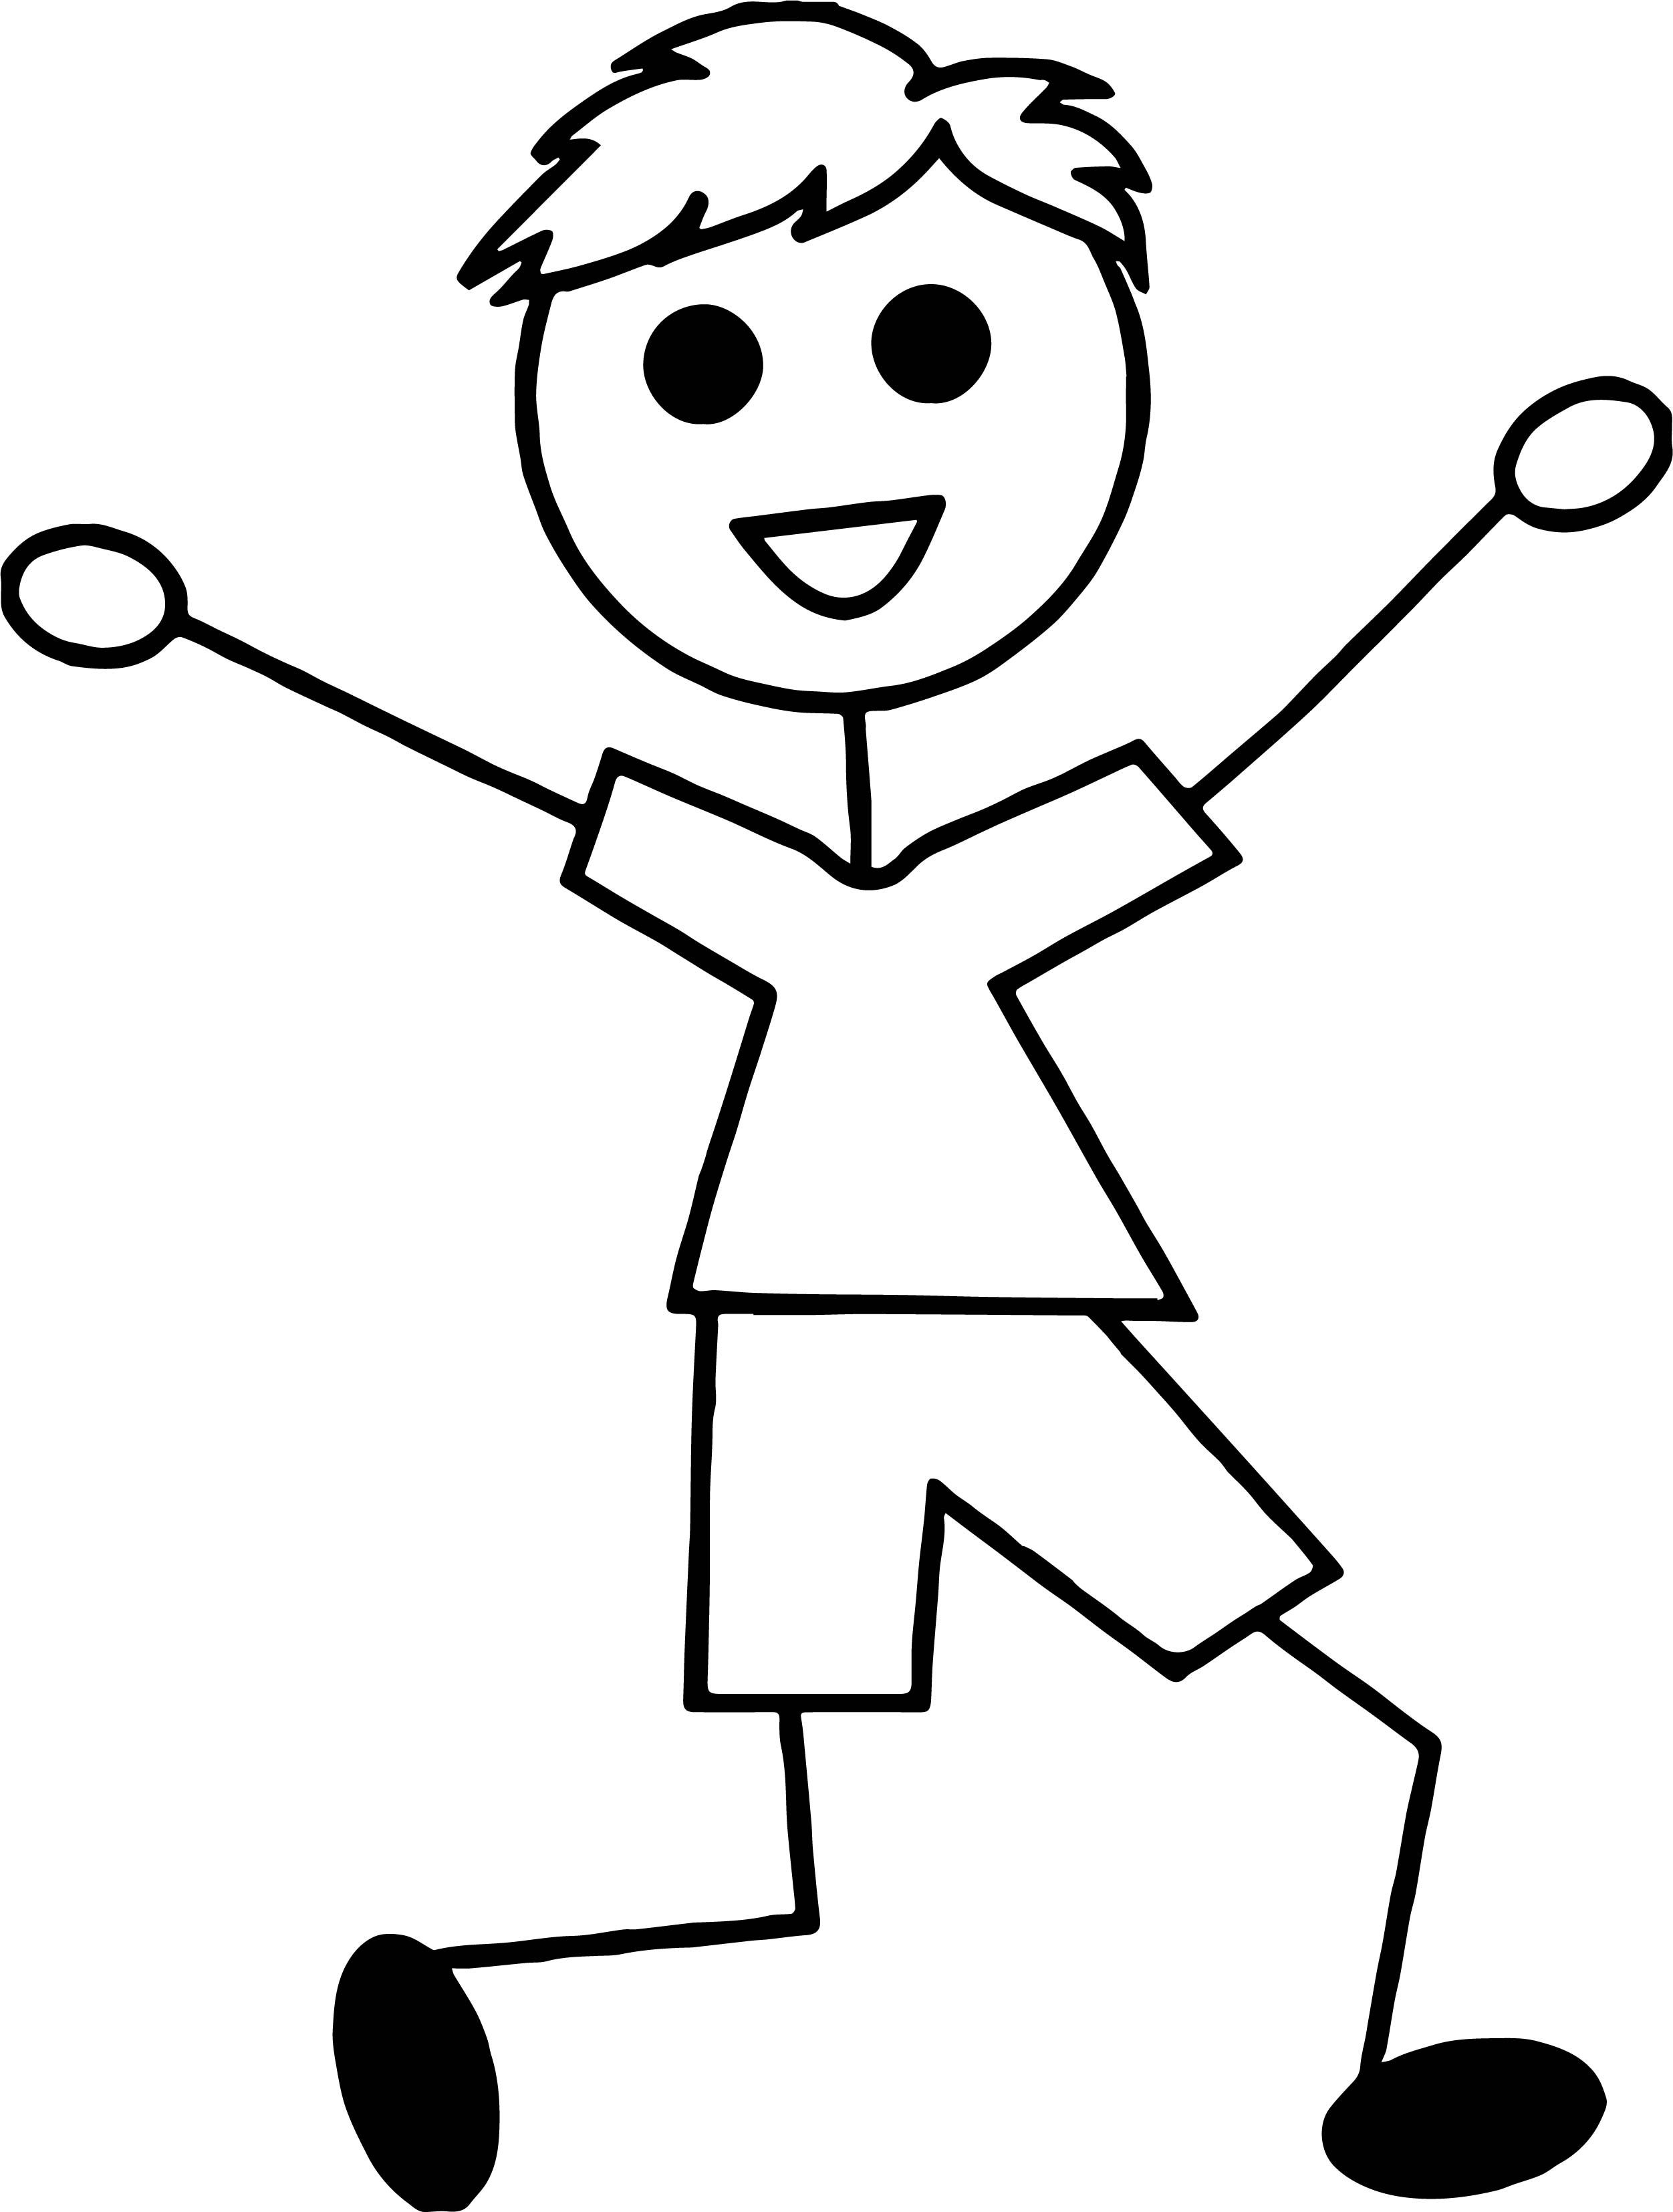 coloring clipart boy soccer boy coloring page coloringcom boy coloring clipart